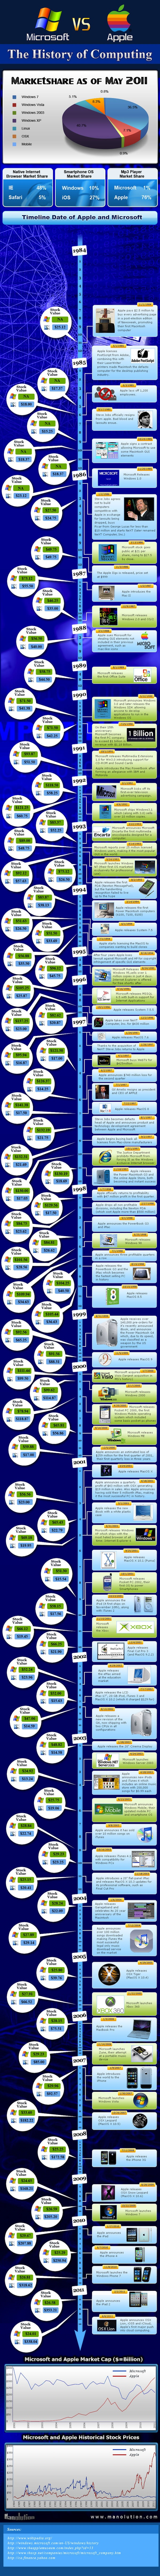 History Of Computing Apple Microsoft